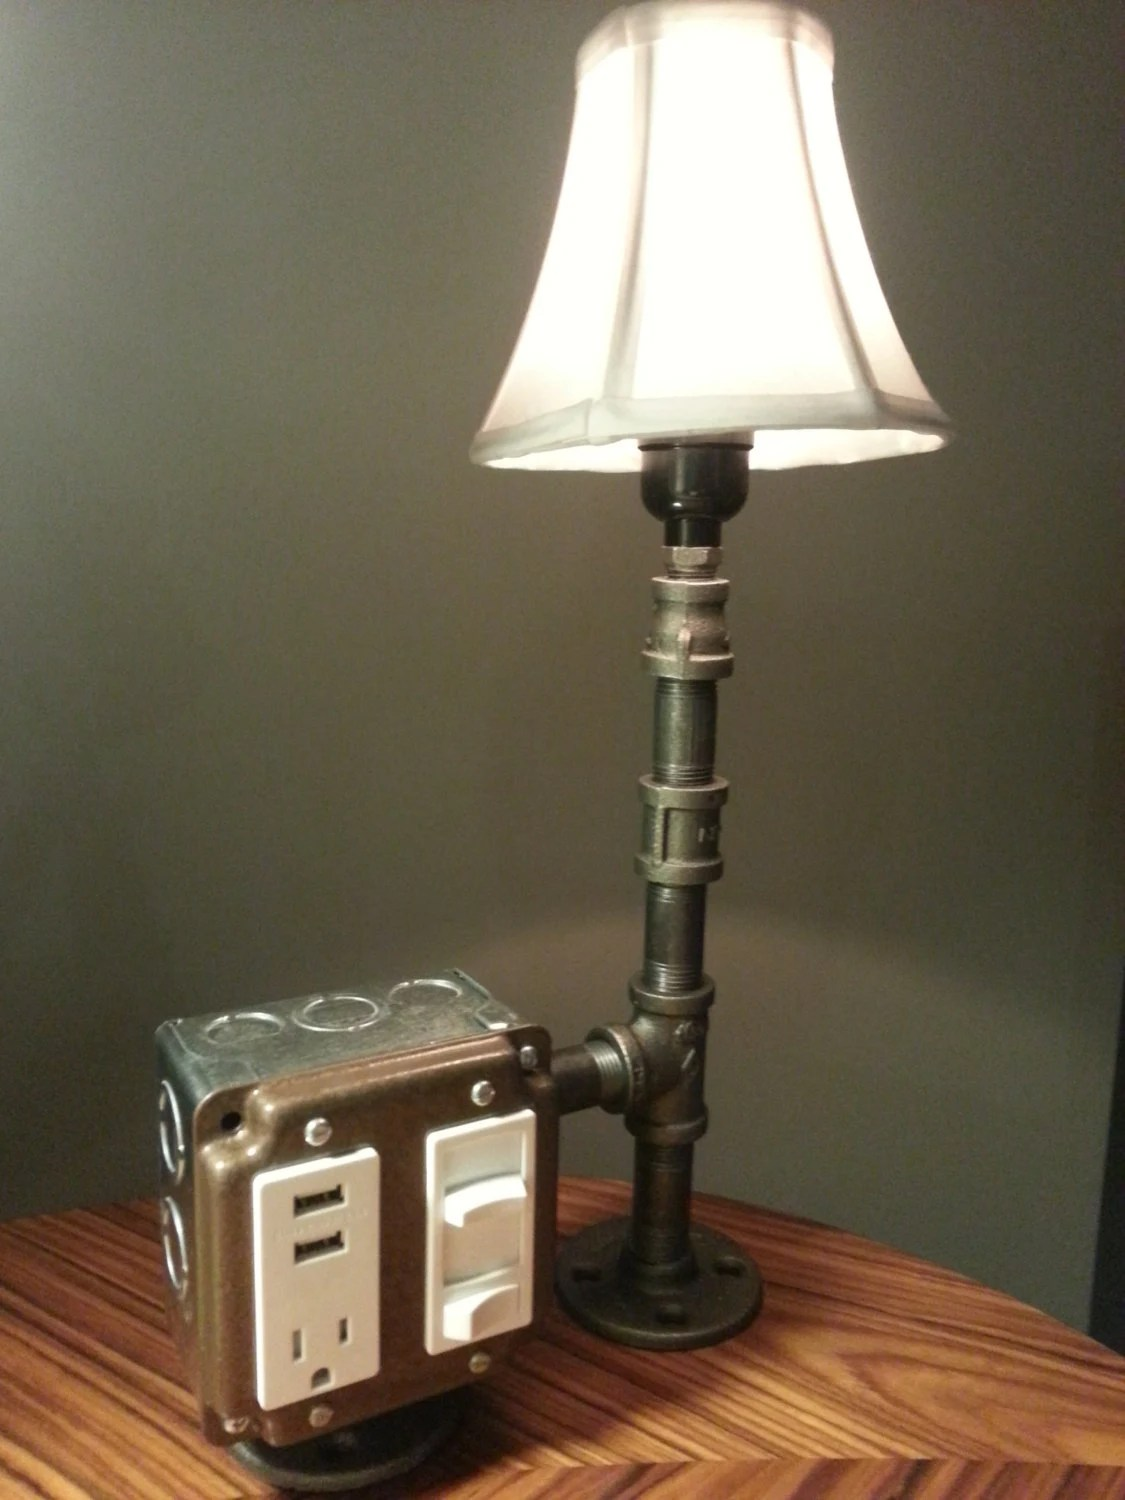 Bedside Lamp With Dimmer Switch The Hammered Boss Desk Or Table Lamp With Usb By Bosslamps